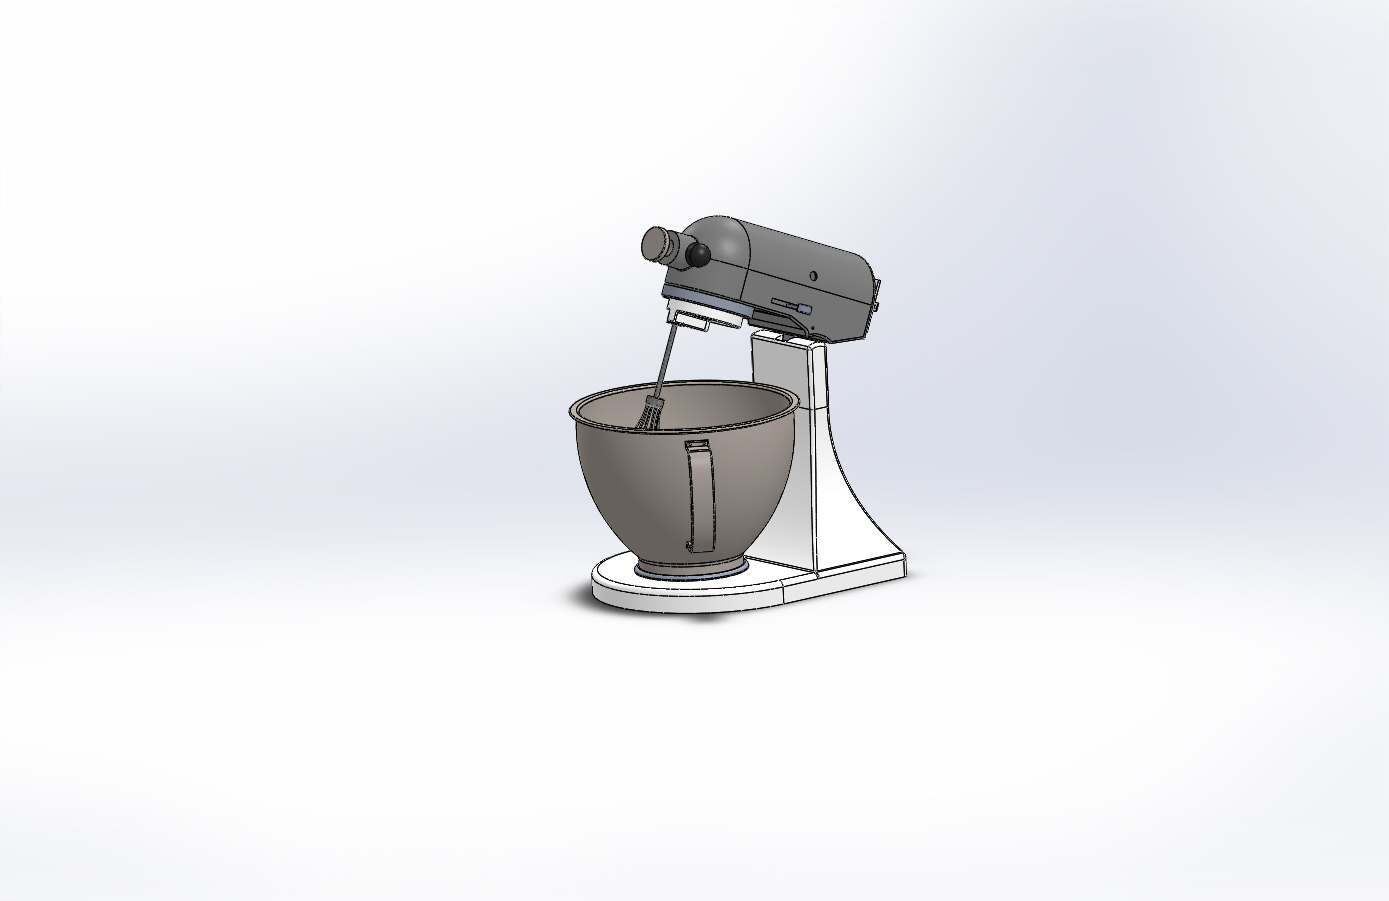 Cake Mixer CAD Model